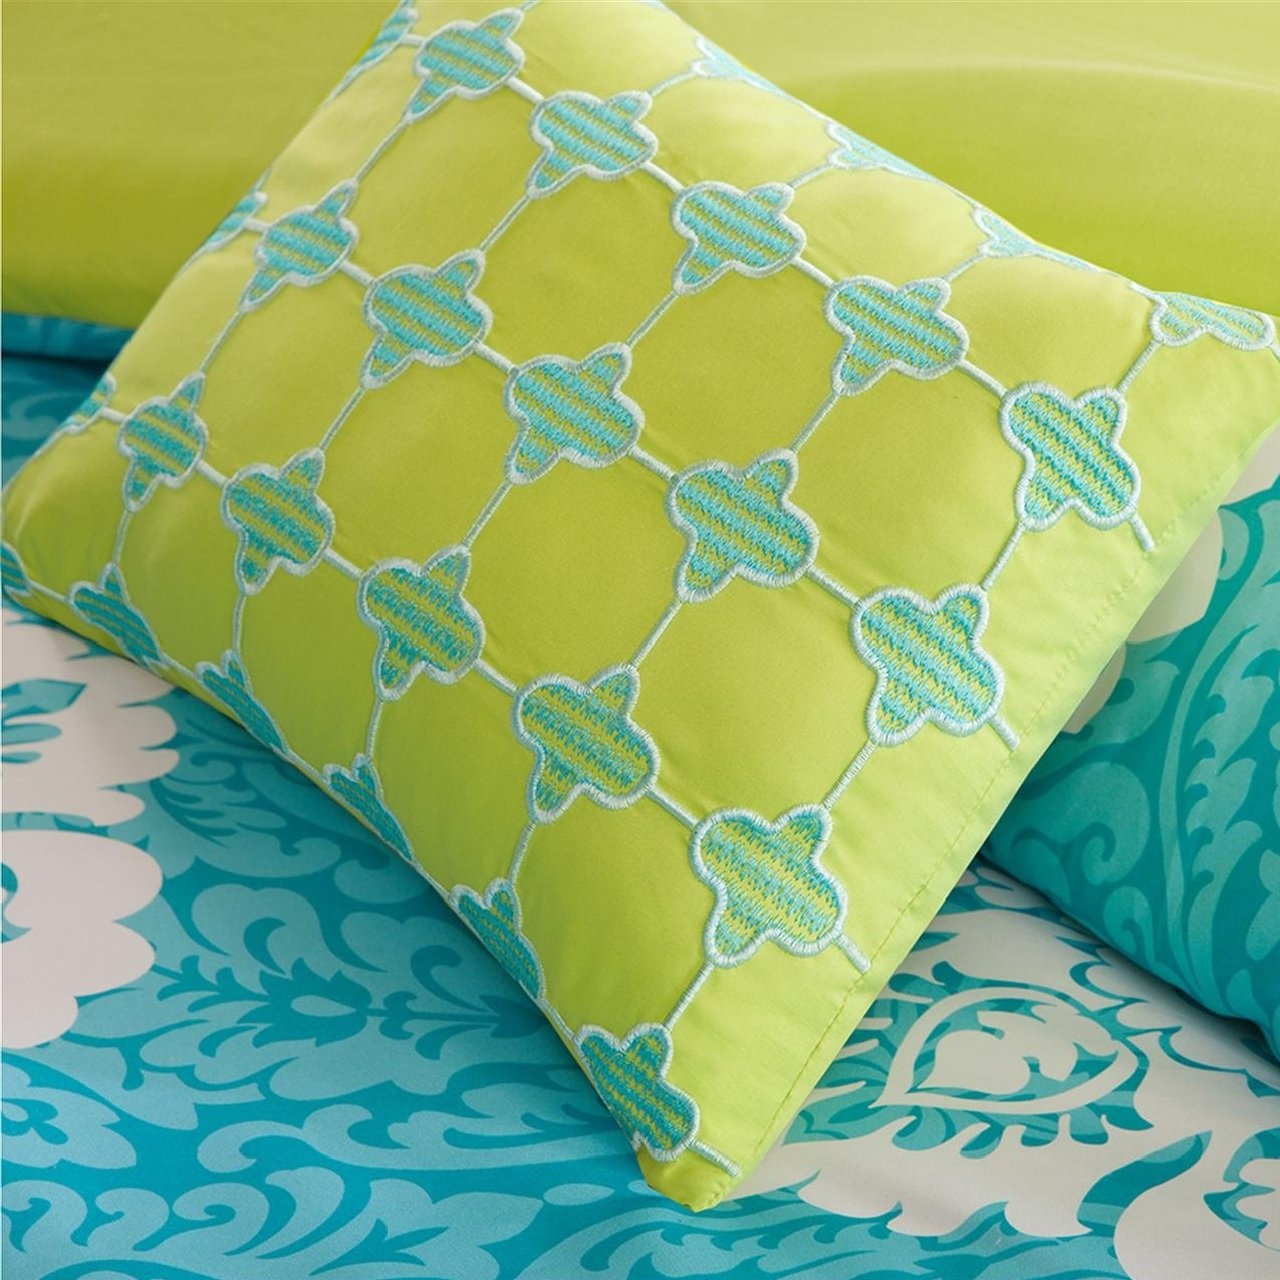 Modern Teen Bedding Girls 4 Piece Reversible Comforter Set Aqua Teal Blue Lime Green Floral Damask Print. Includes Bonus Sleep Mask From Designer Home. (Twin/twin Xl) by ID (Image #5)